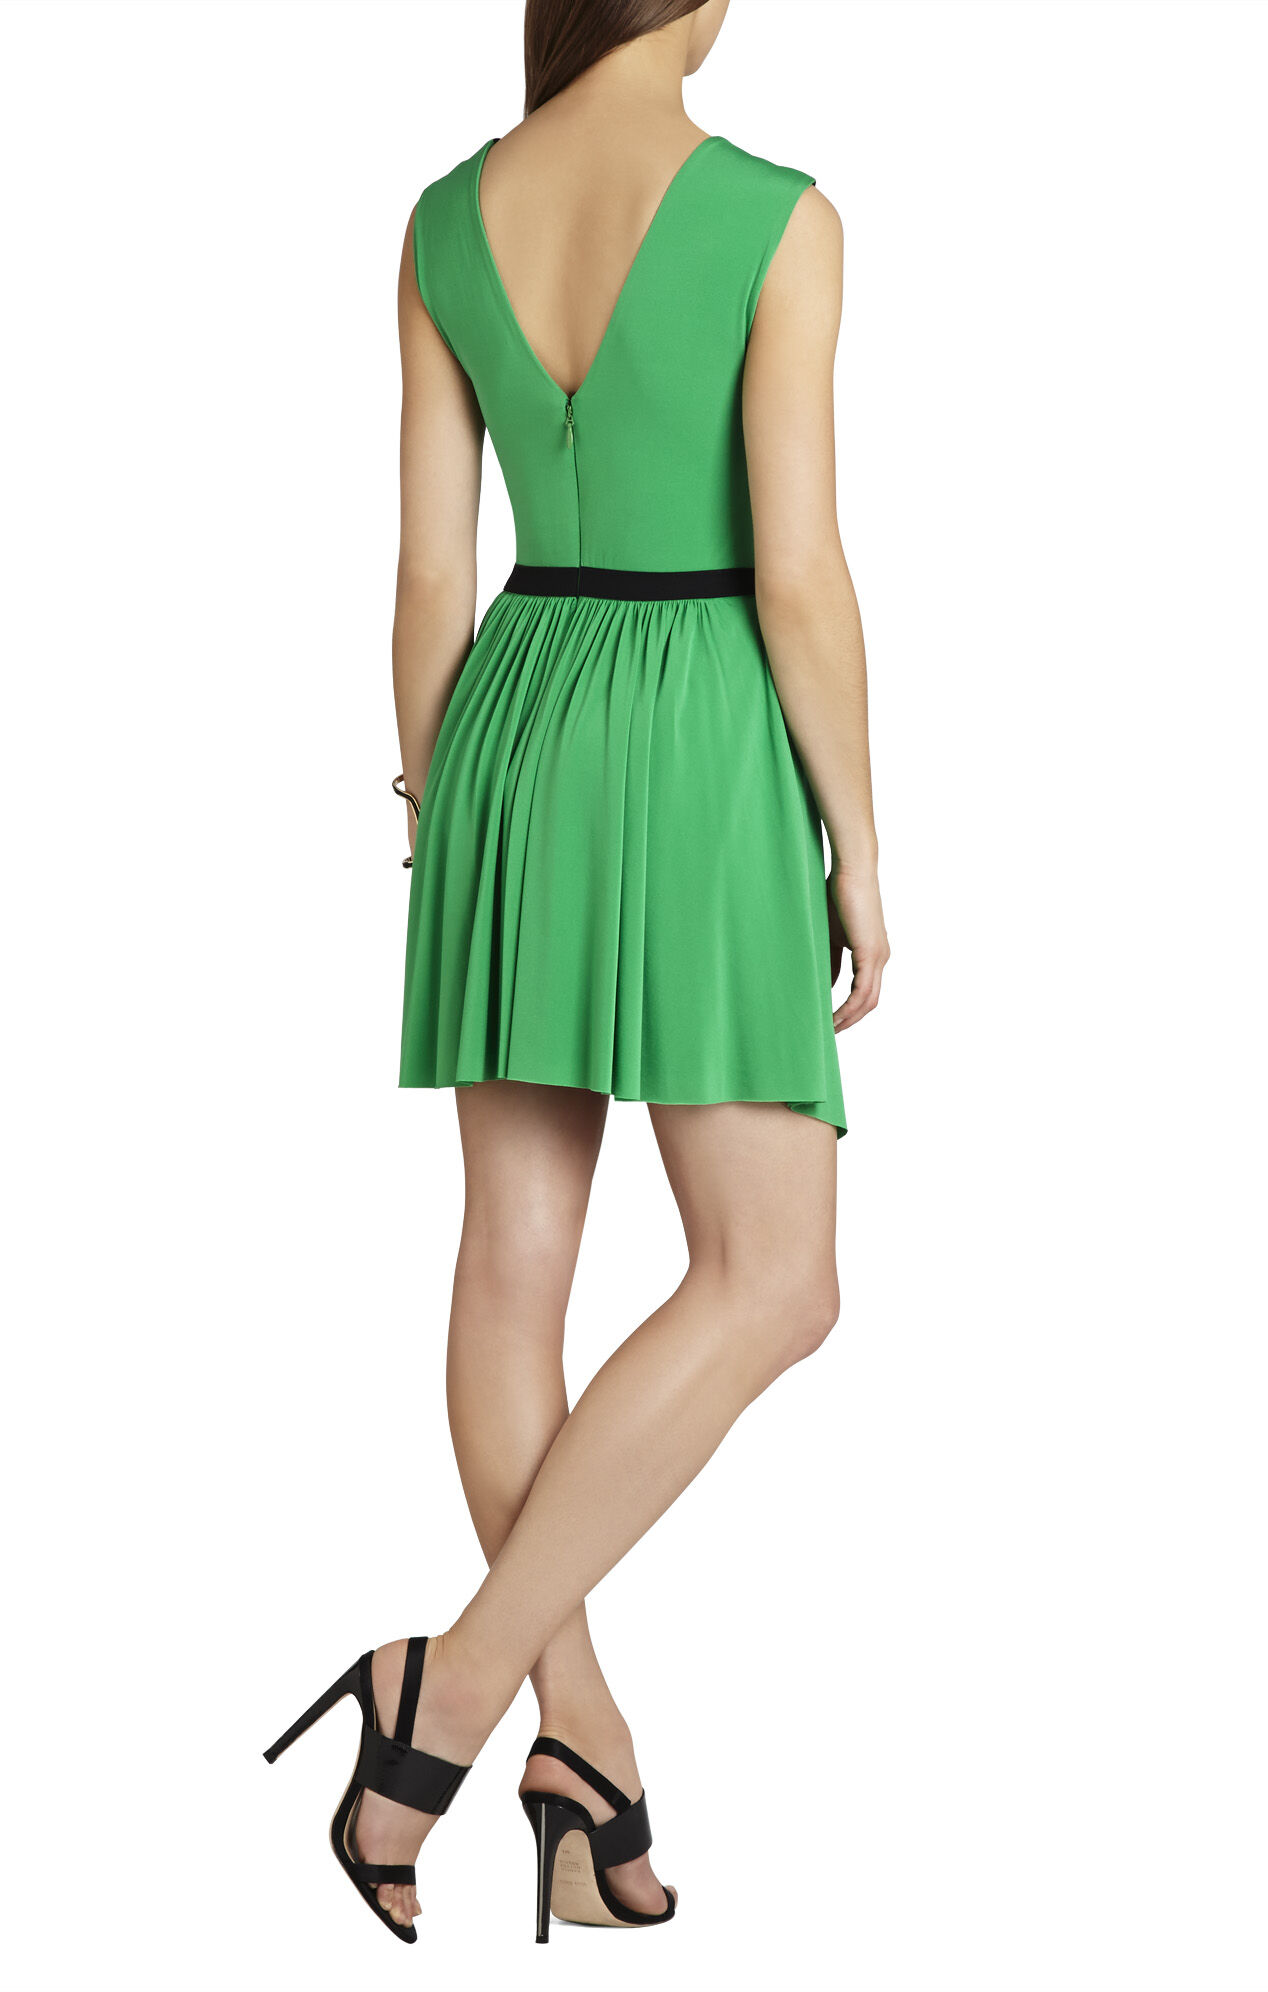 Olyvia Sleeveless Wrap Dress